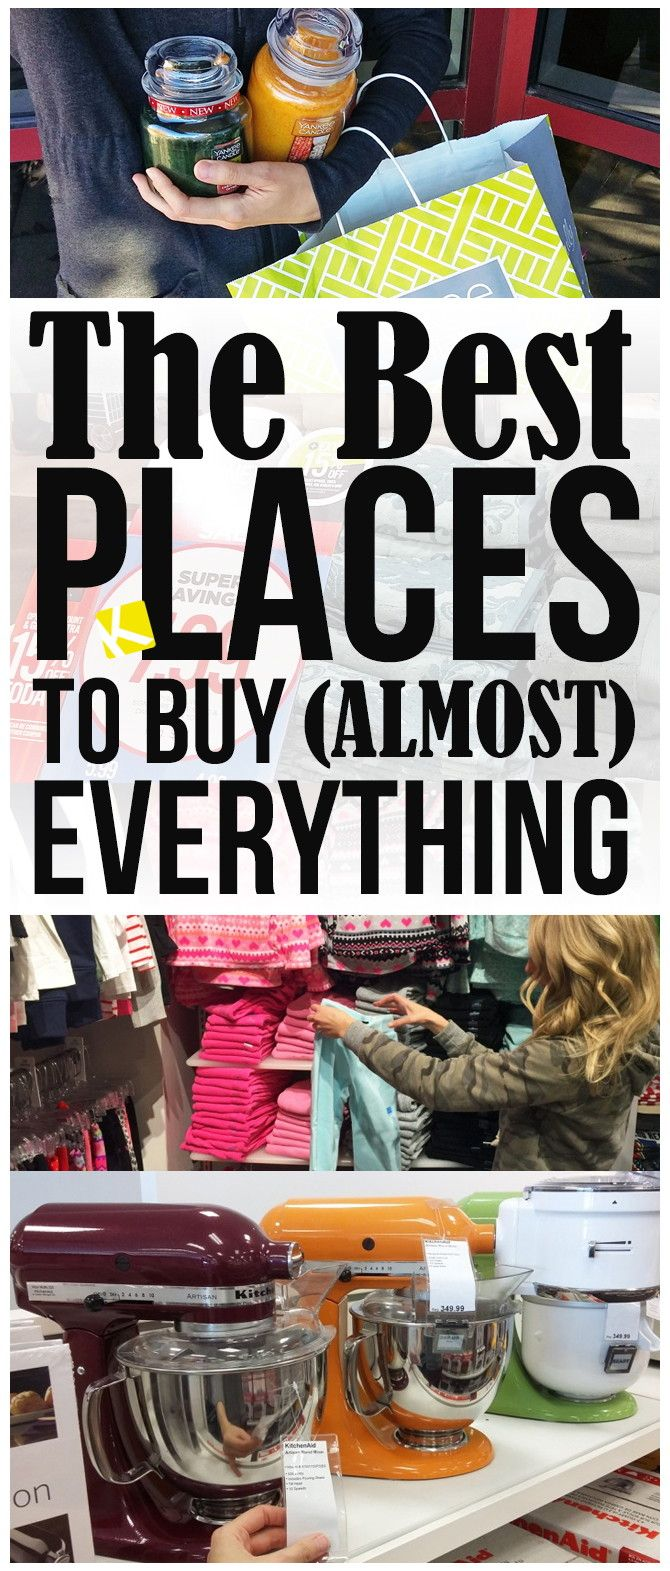 I get rock-bottom prices on almost everything I buy.  My secret? I buy with a coupon during a sale (the same strategy I use couponing). And I buy at little-known places for killer deals.